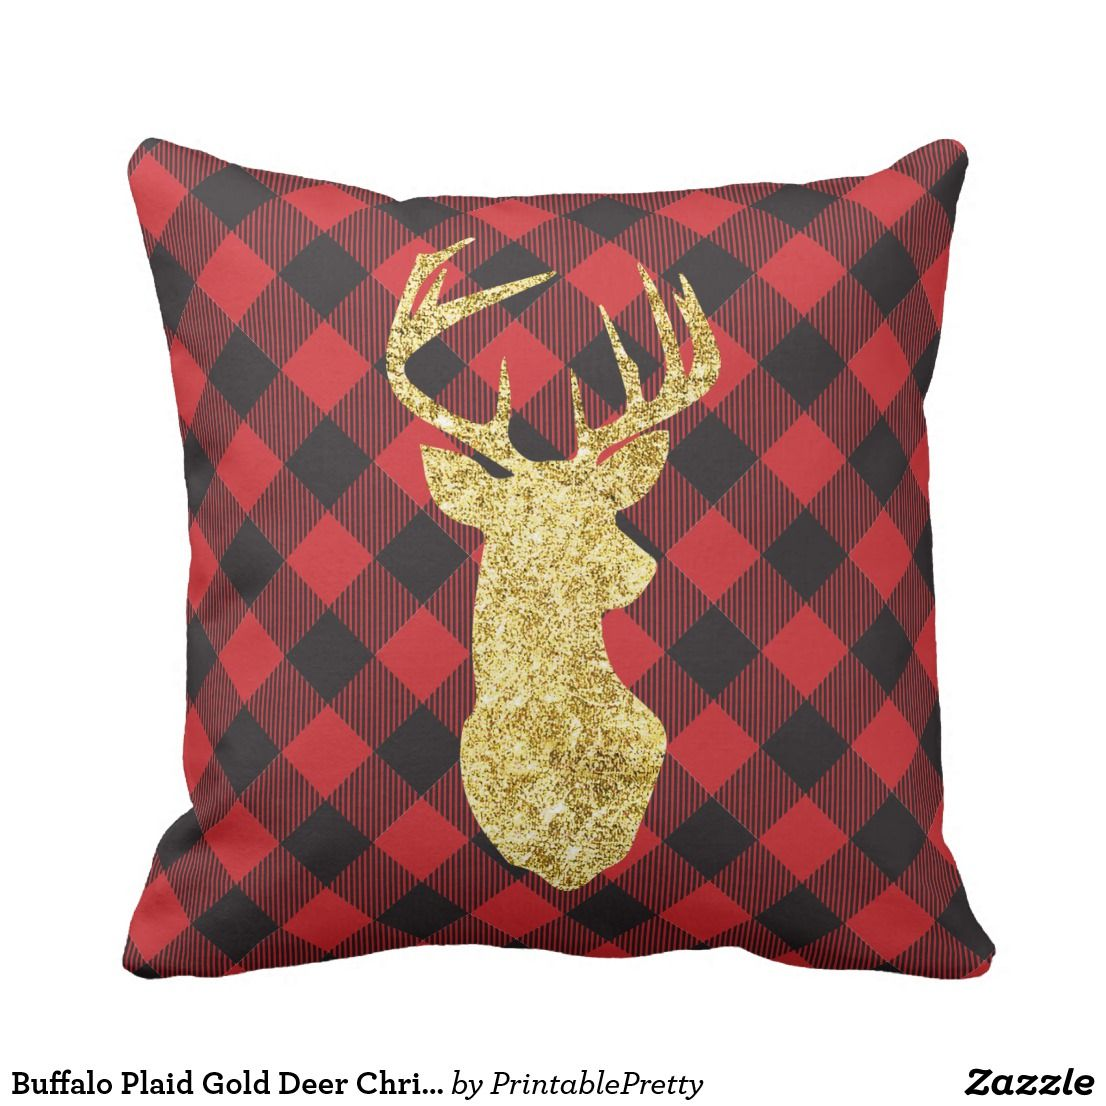 Peachy Buffalo Plaid Gold Deer Christmas Throw Pillow Zazzle Com Inzonedesignstudio Interior Chair Design Inzonedesignstudiocom